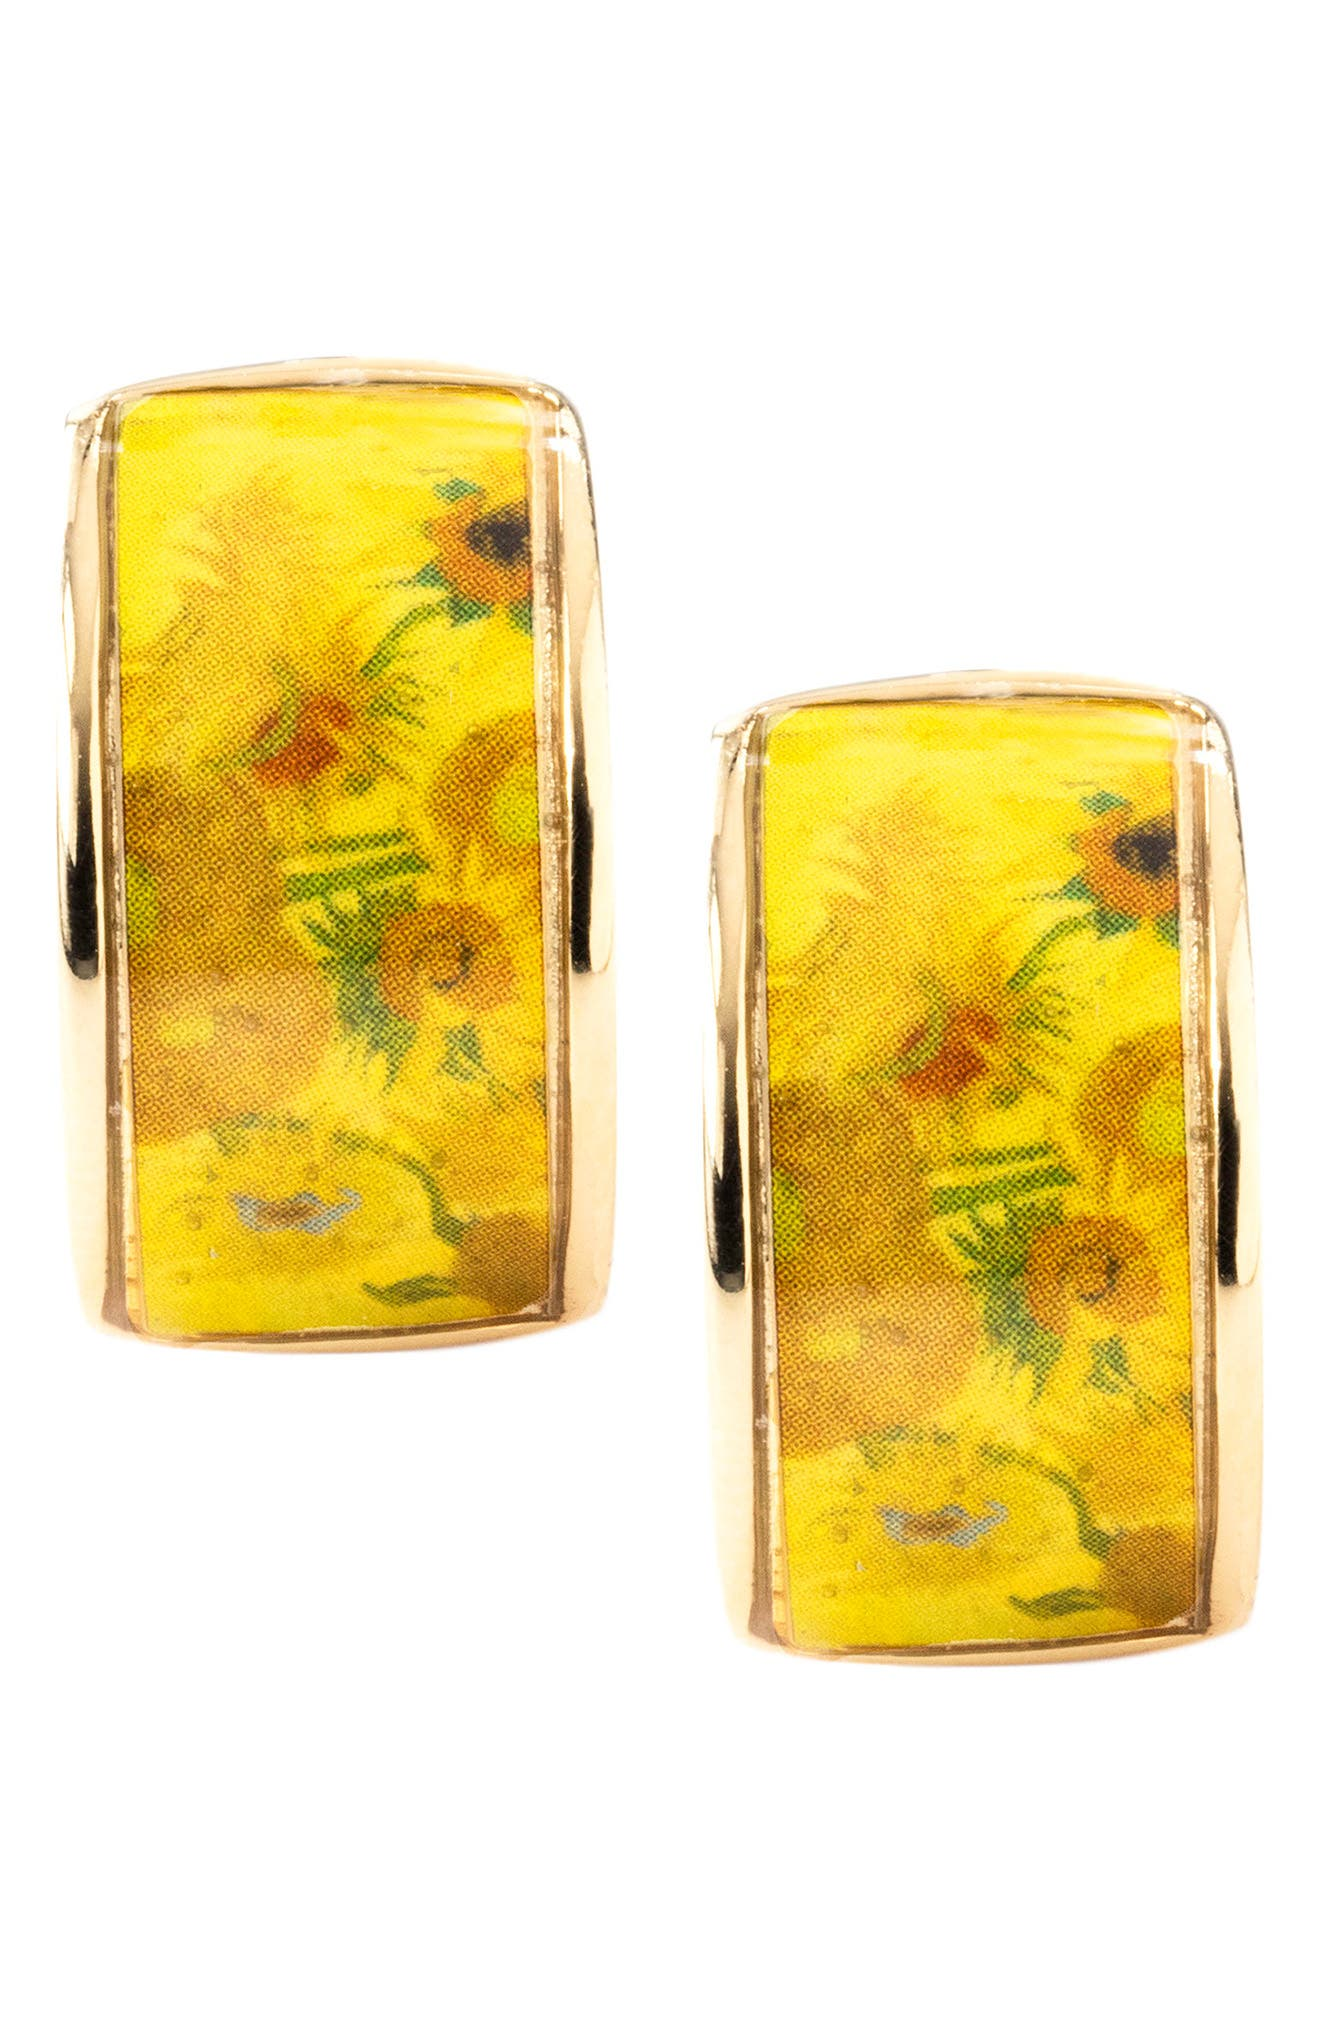 Sunflower Earrings,                             Alternate thumbnail 4, color,                             Yellow/ Gold